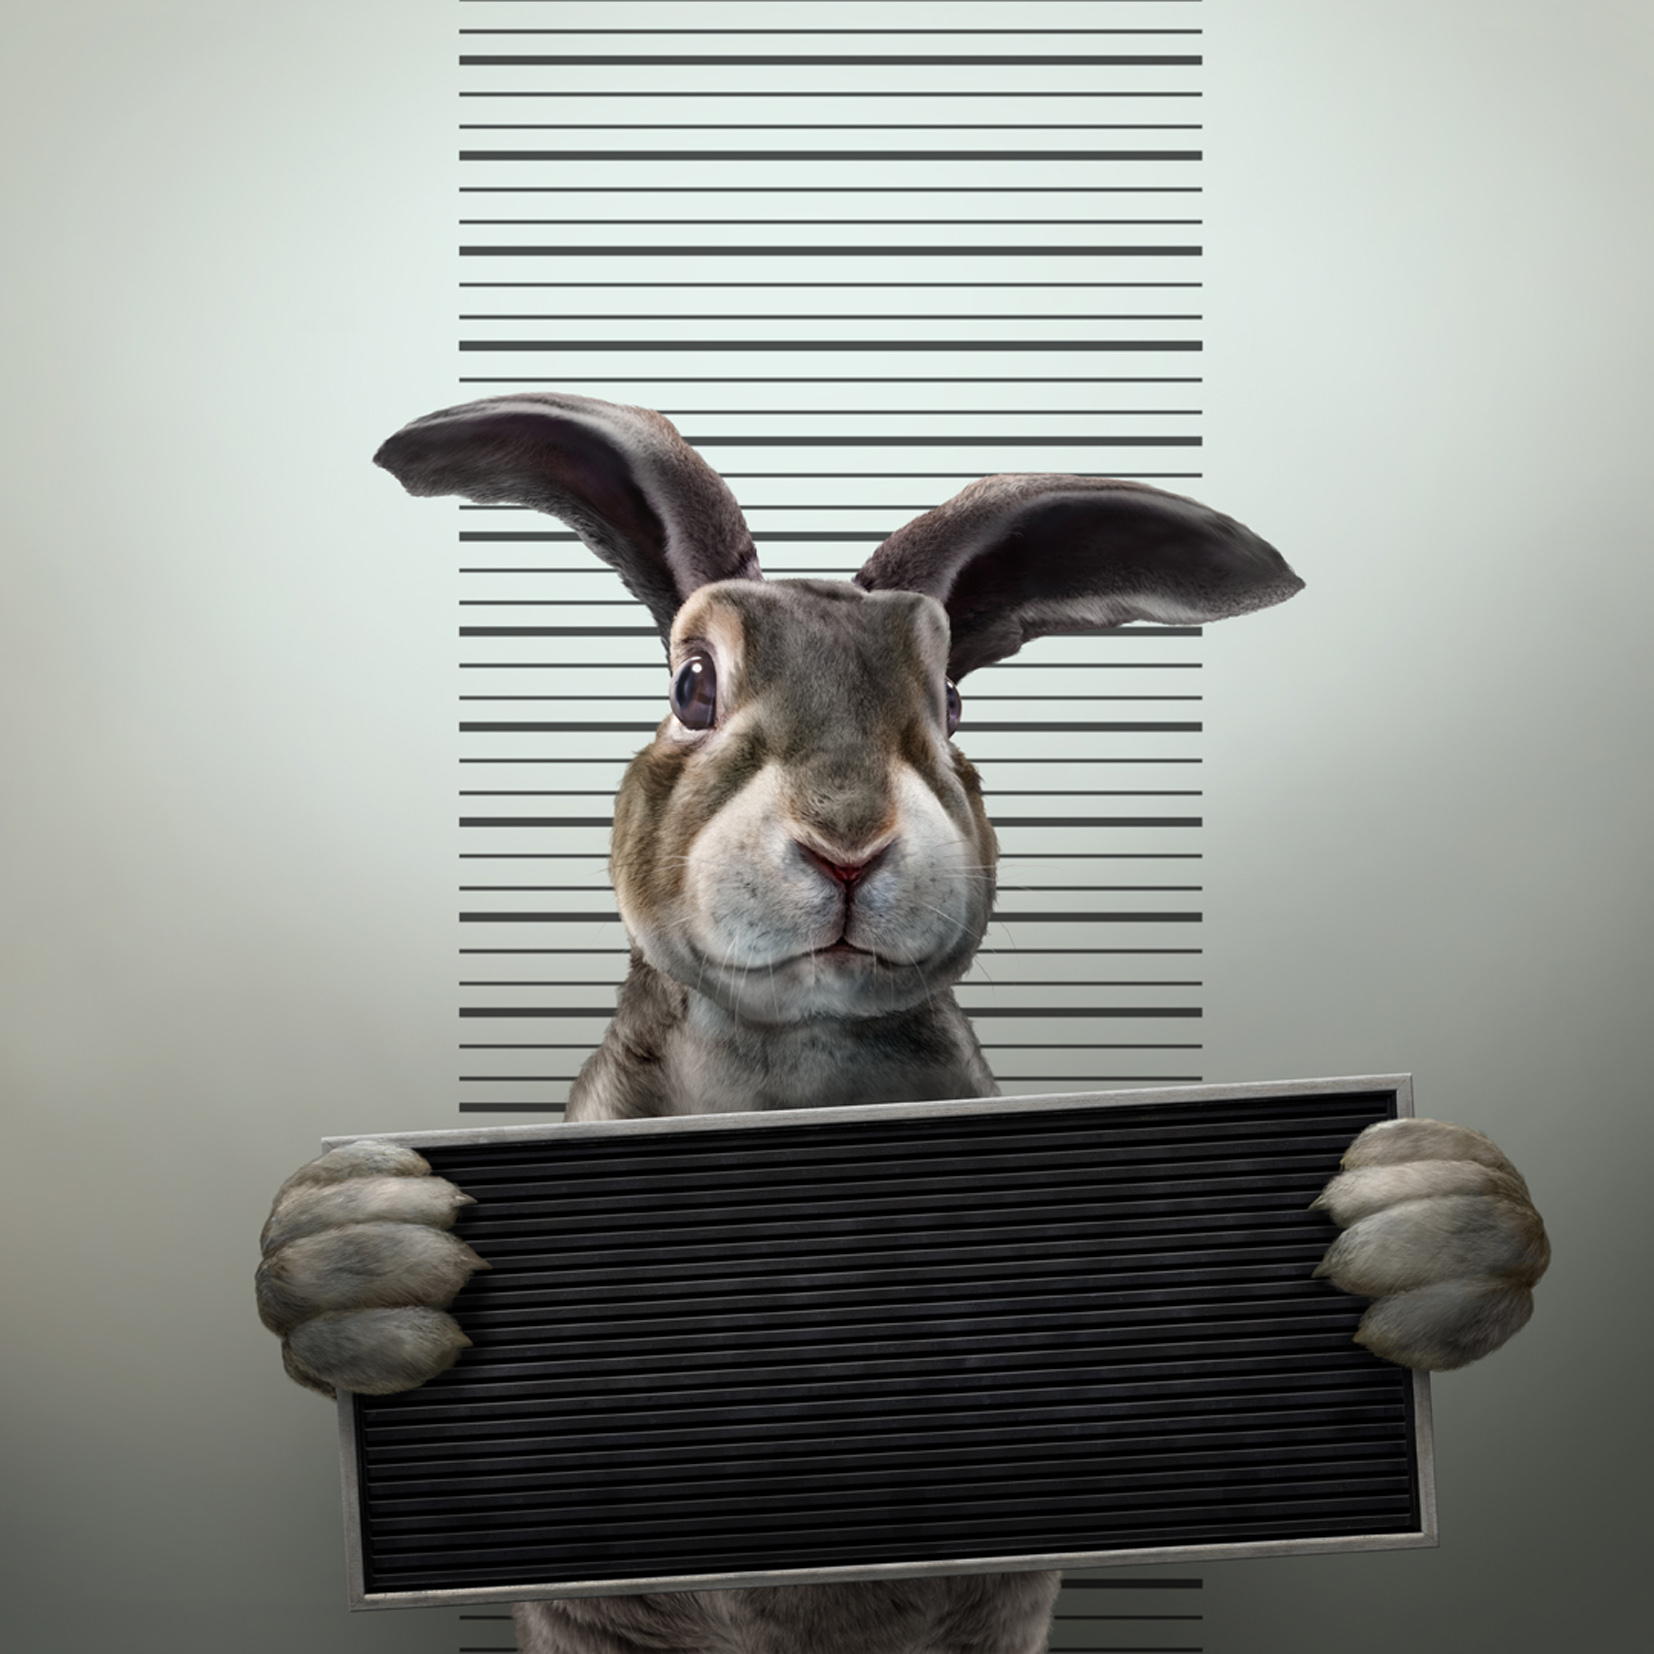 Rabbit Arrest